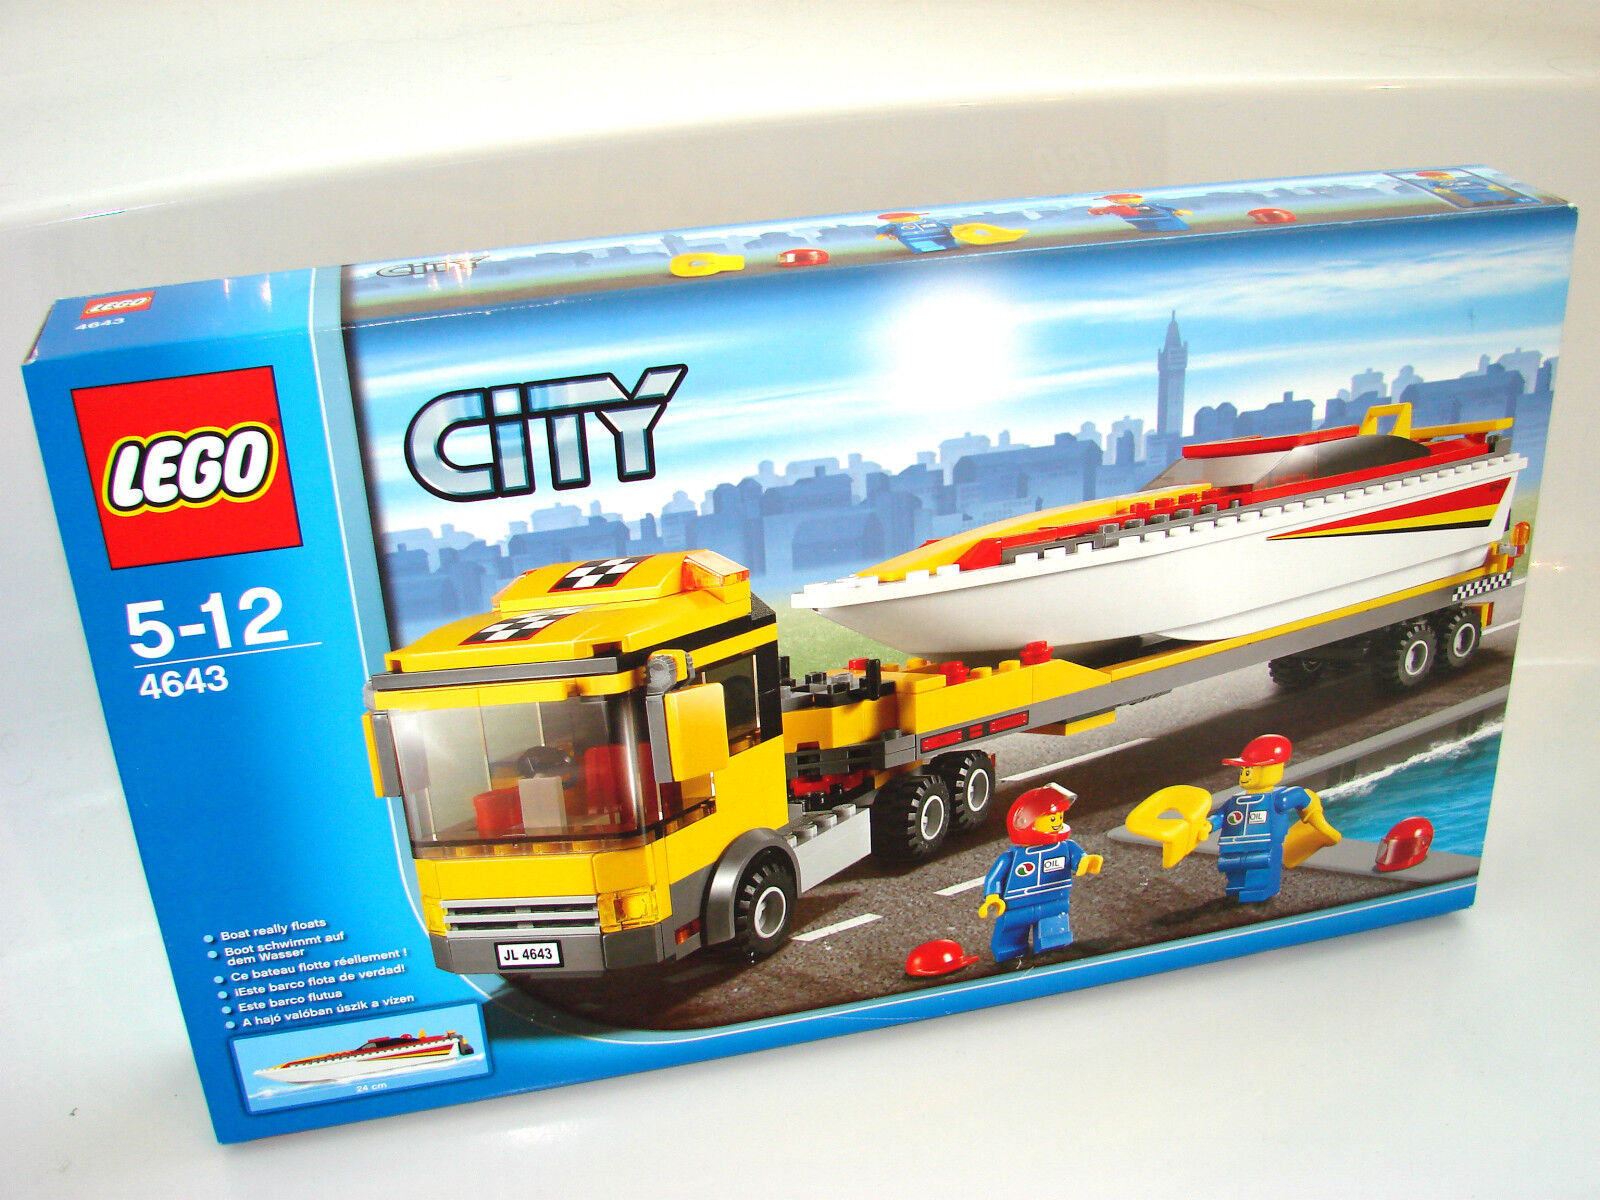 LEGO ® City 4643 Power BOOT TRANSPORTER NUOVO OVP _ Power Boat TRANSPORTER NEW MISB NR